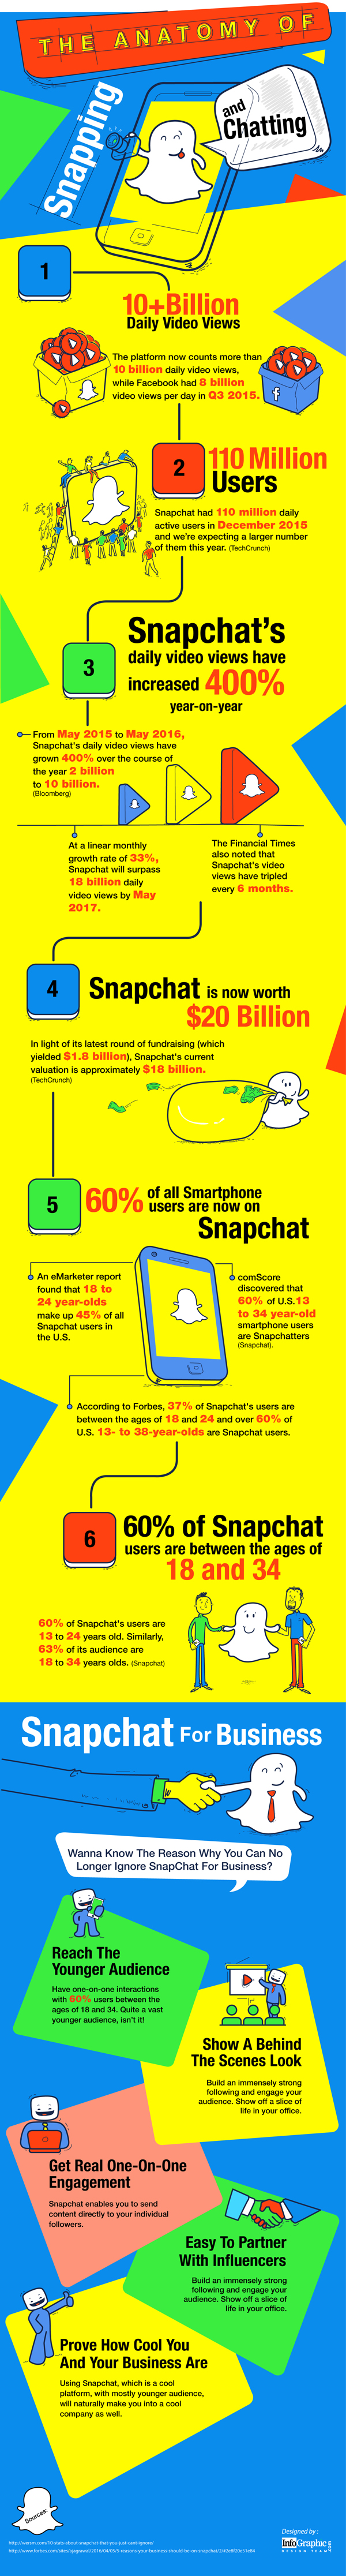 Anatomy of Snapping and Chatting with SnapChat